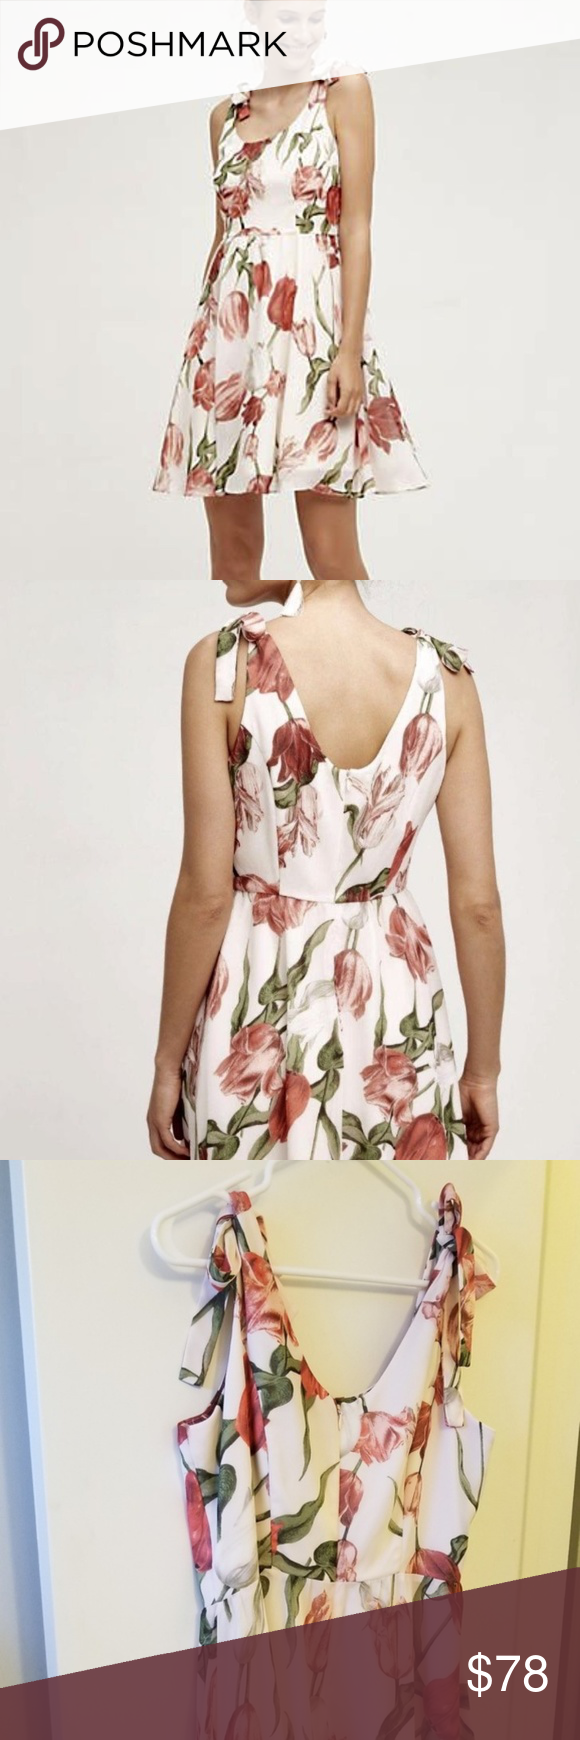 Anthropologie Pink Red Tulip Dress Fit And Flare L Anthropologie Pink Red Tulip Dress Fit And Flare L In Great Condition Pap Tulip Dress Fitted Dress Dresses [ 1740 x 580 Pixel ]